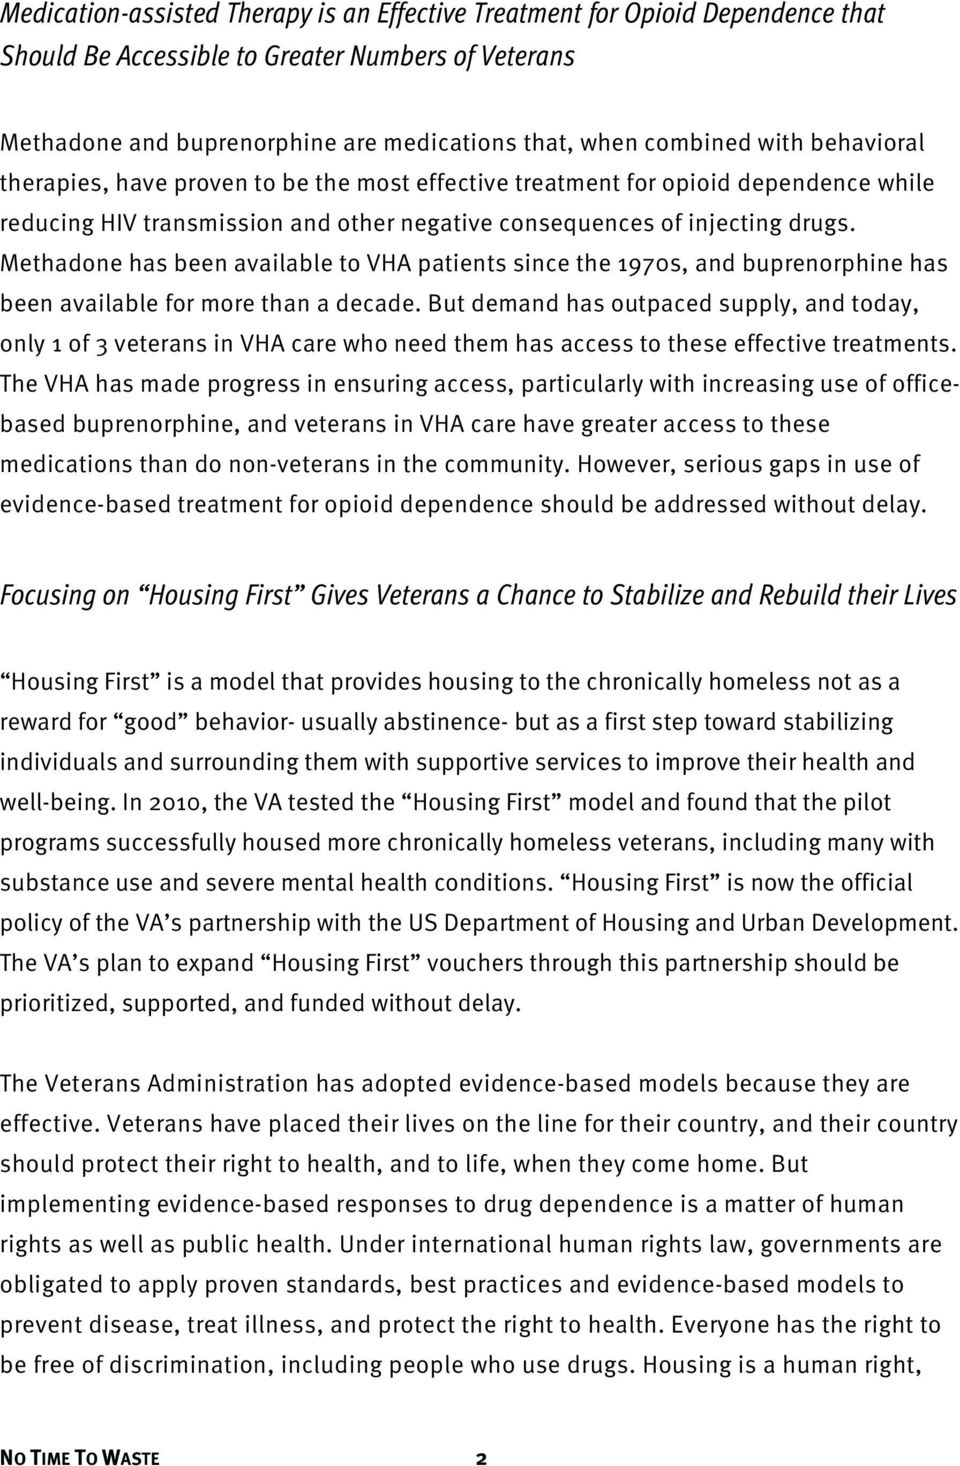 Methadone has been available to VHA patients since the 1970s, and buprenorphine has been available for more than a decade.